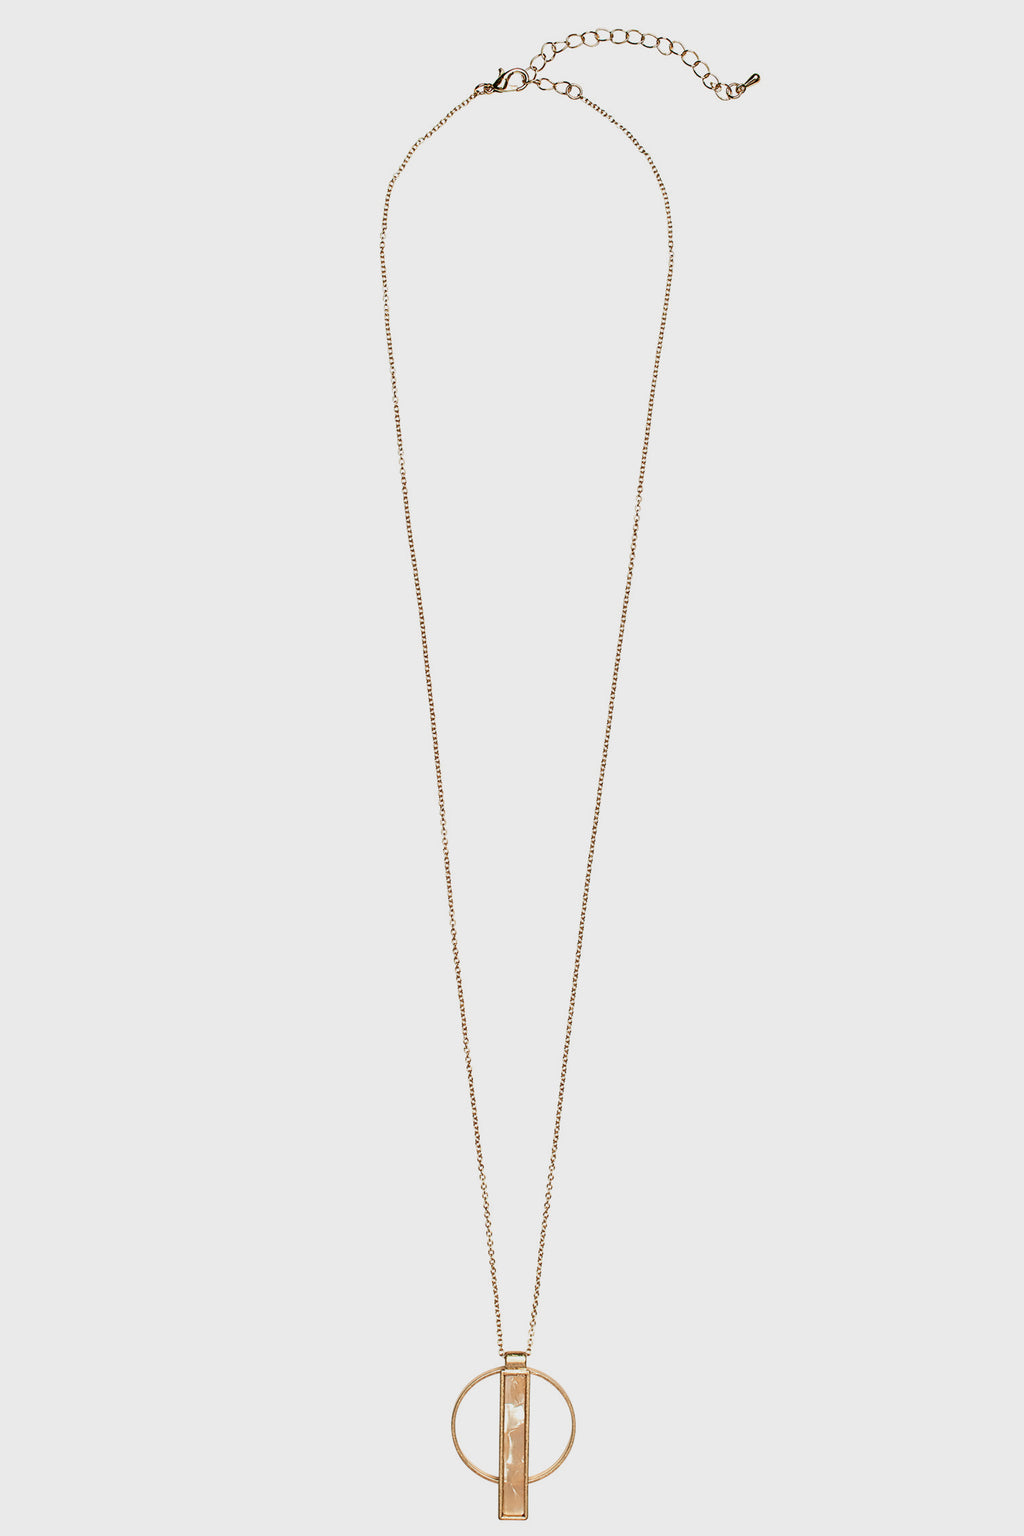 Long Necklace with Circle and Bar Pendant (BSJ3513)- Final Sale-NECKLACE-BaySky